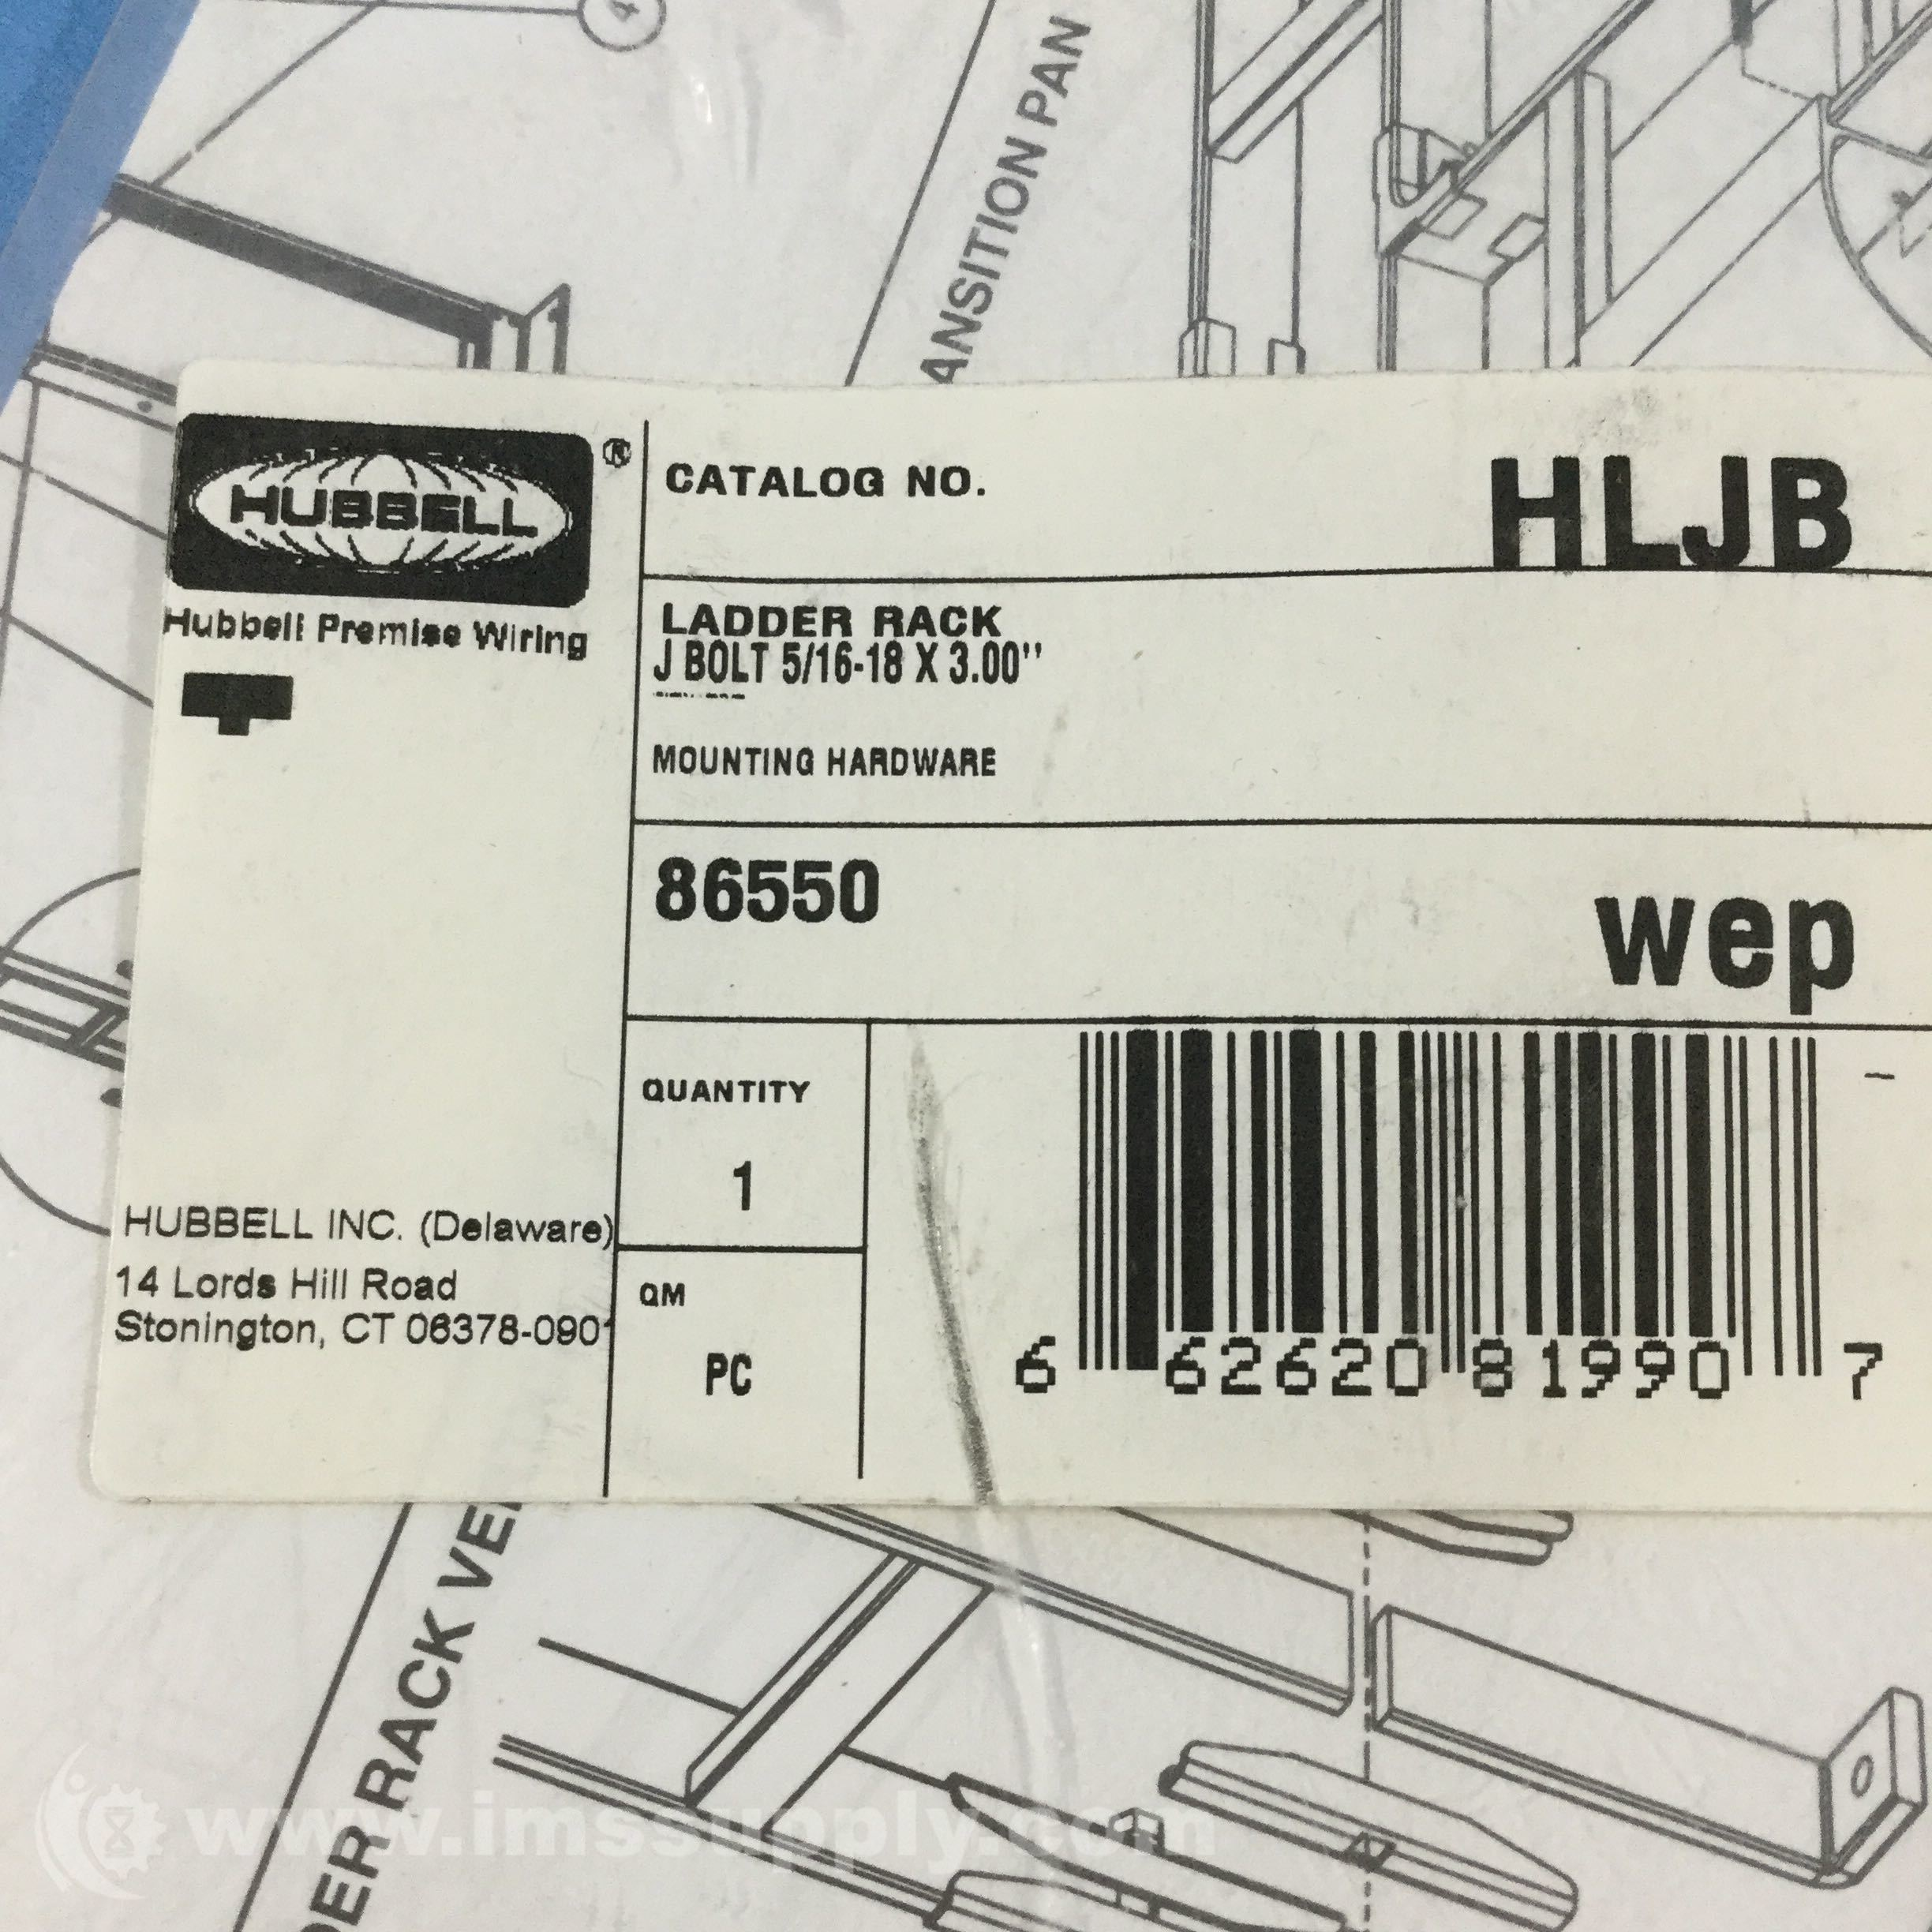 Hubbell Hljb Ladder Rack J Bolt 5 16 18x300 Mounting Hardware Qm Series Wiring Diagrams Ims Supply